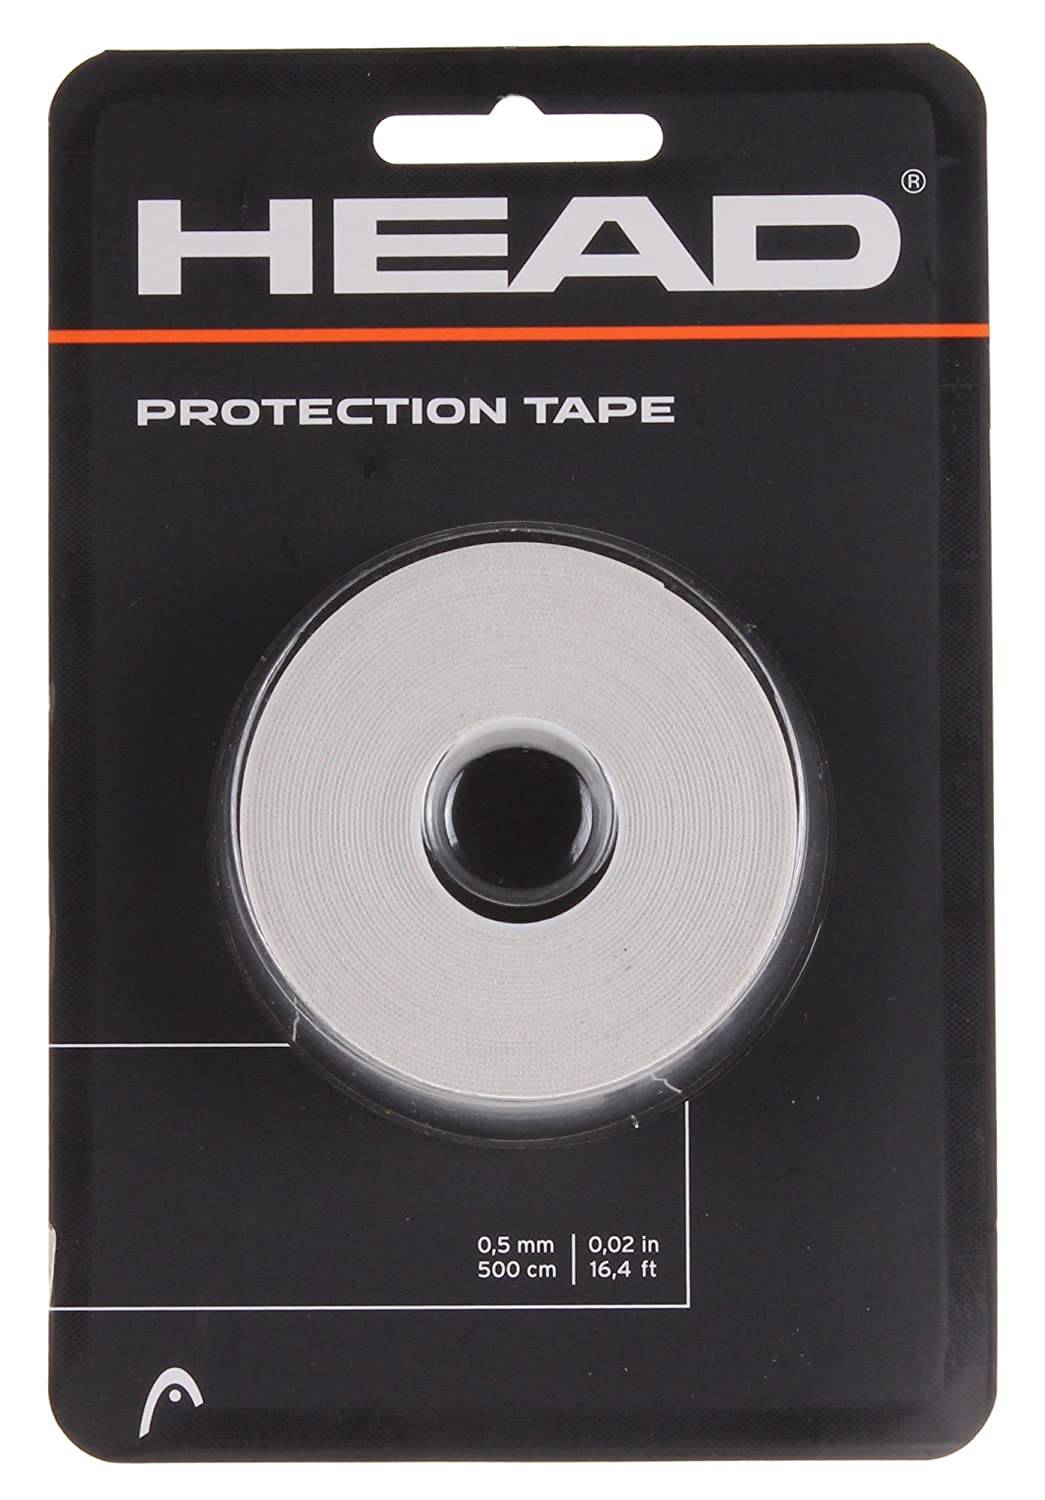 Head New Protection Tape - Cinta Protectora, Color Blanco: Amazon ...